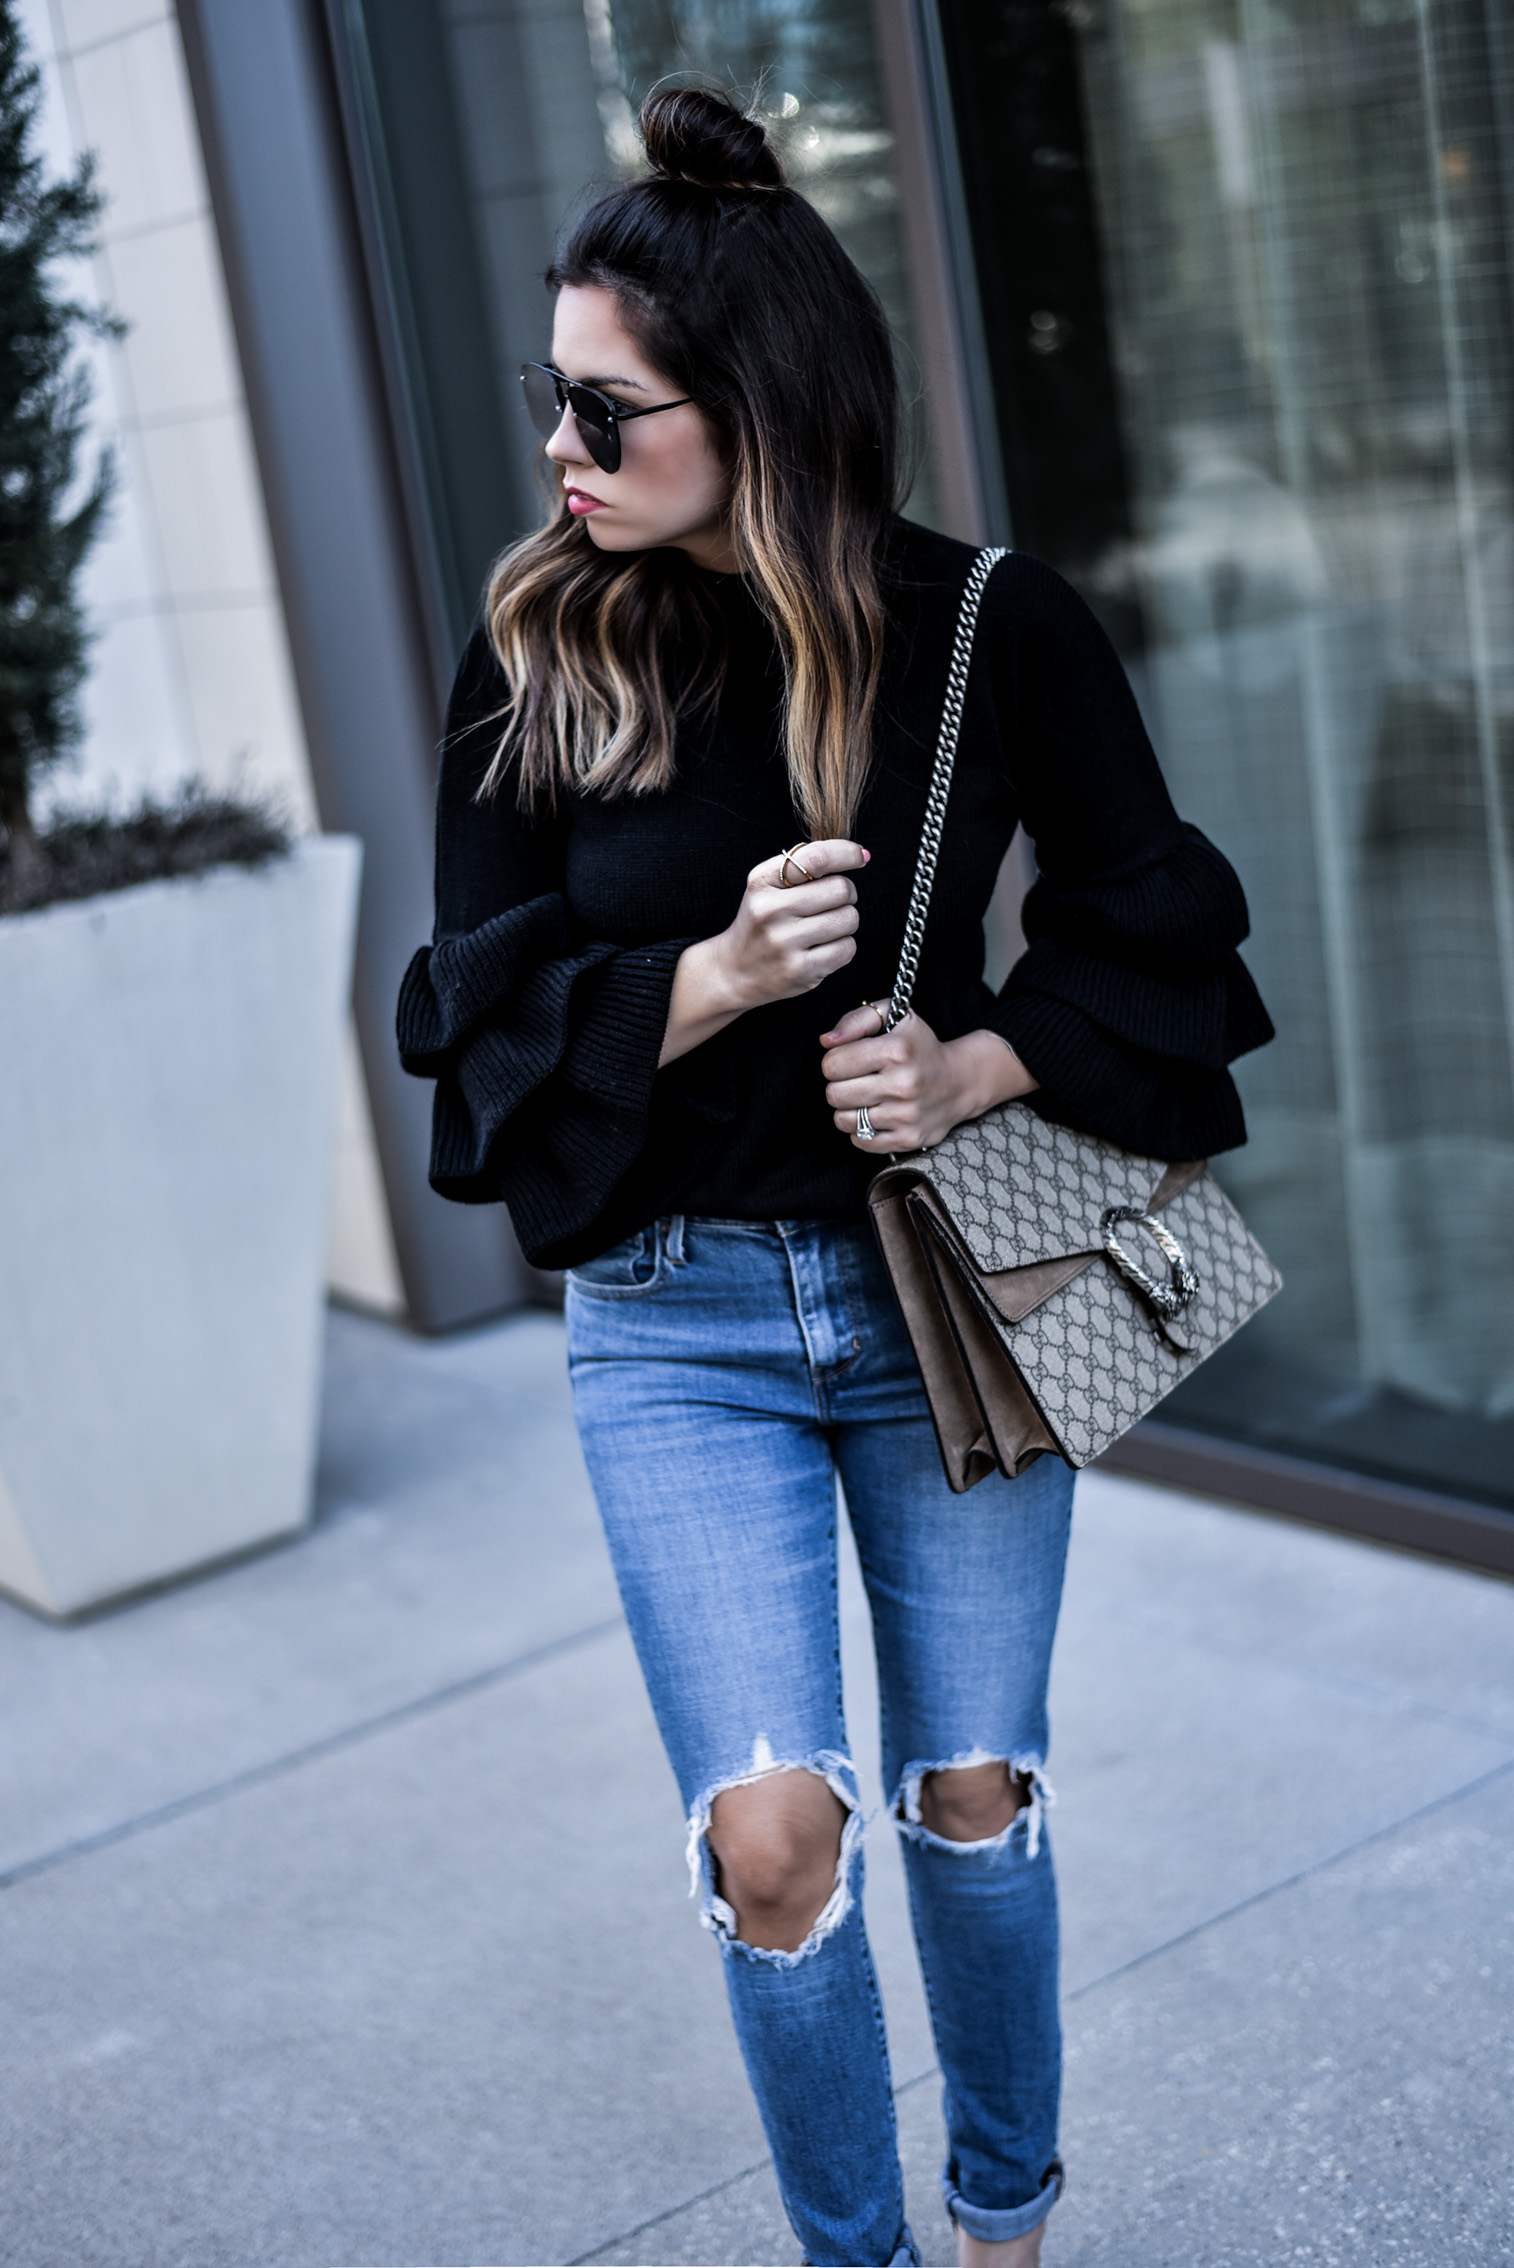 Tiffany Jais Houston fashion and lifestyle blogger wearing a ruffle embellished sleeve top and levis jeans | What's trending in fashion